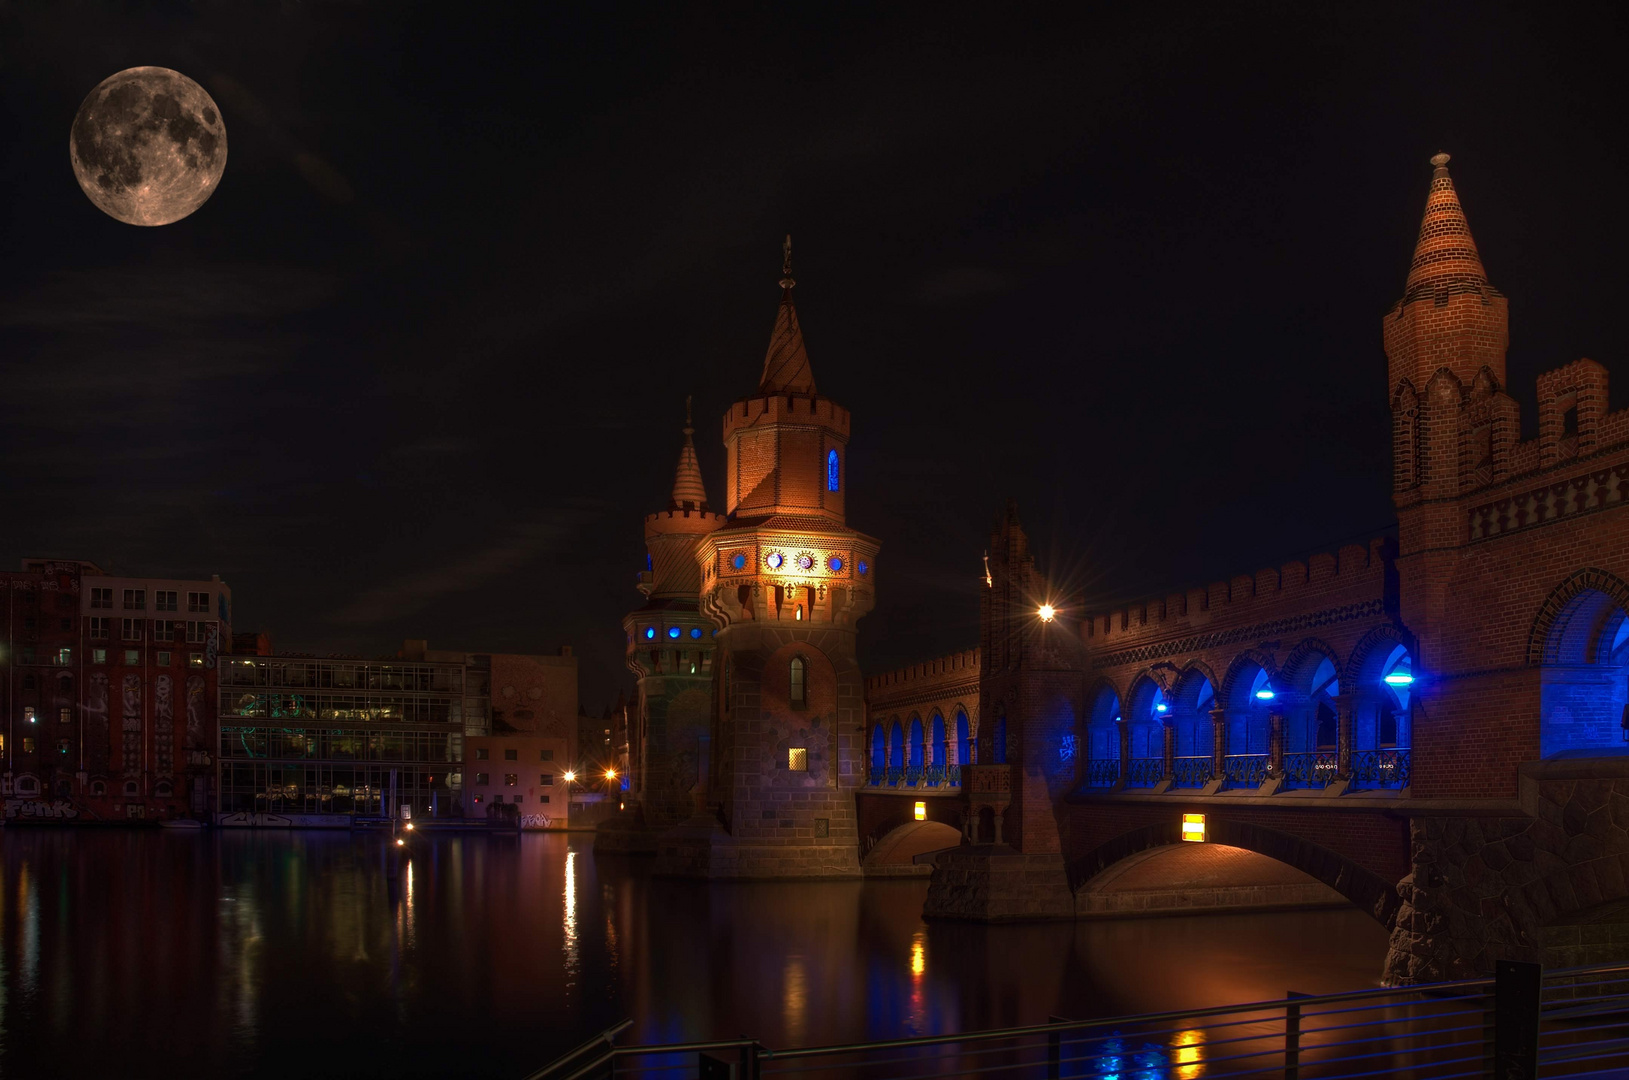 Oberbaumbrücke - festival of light